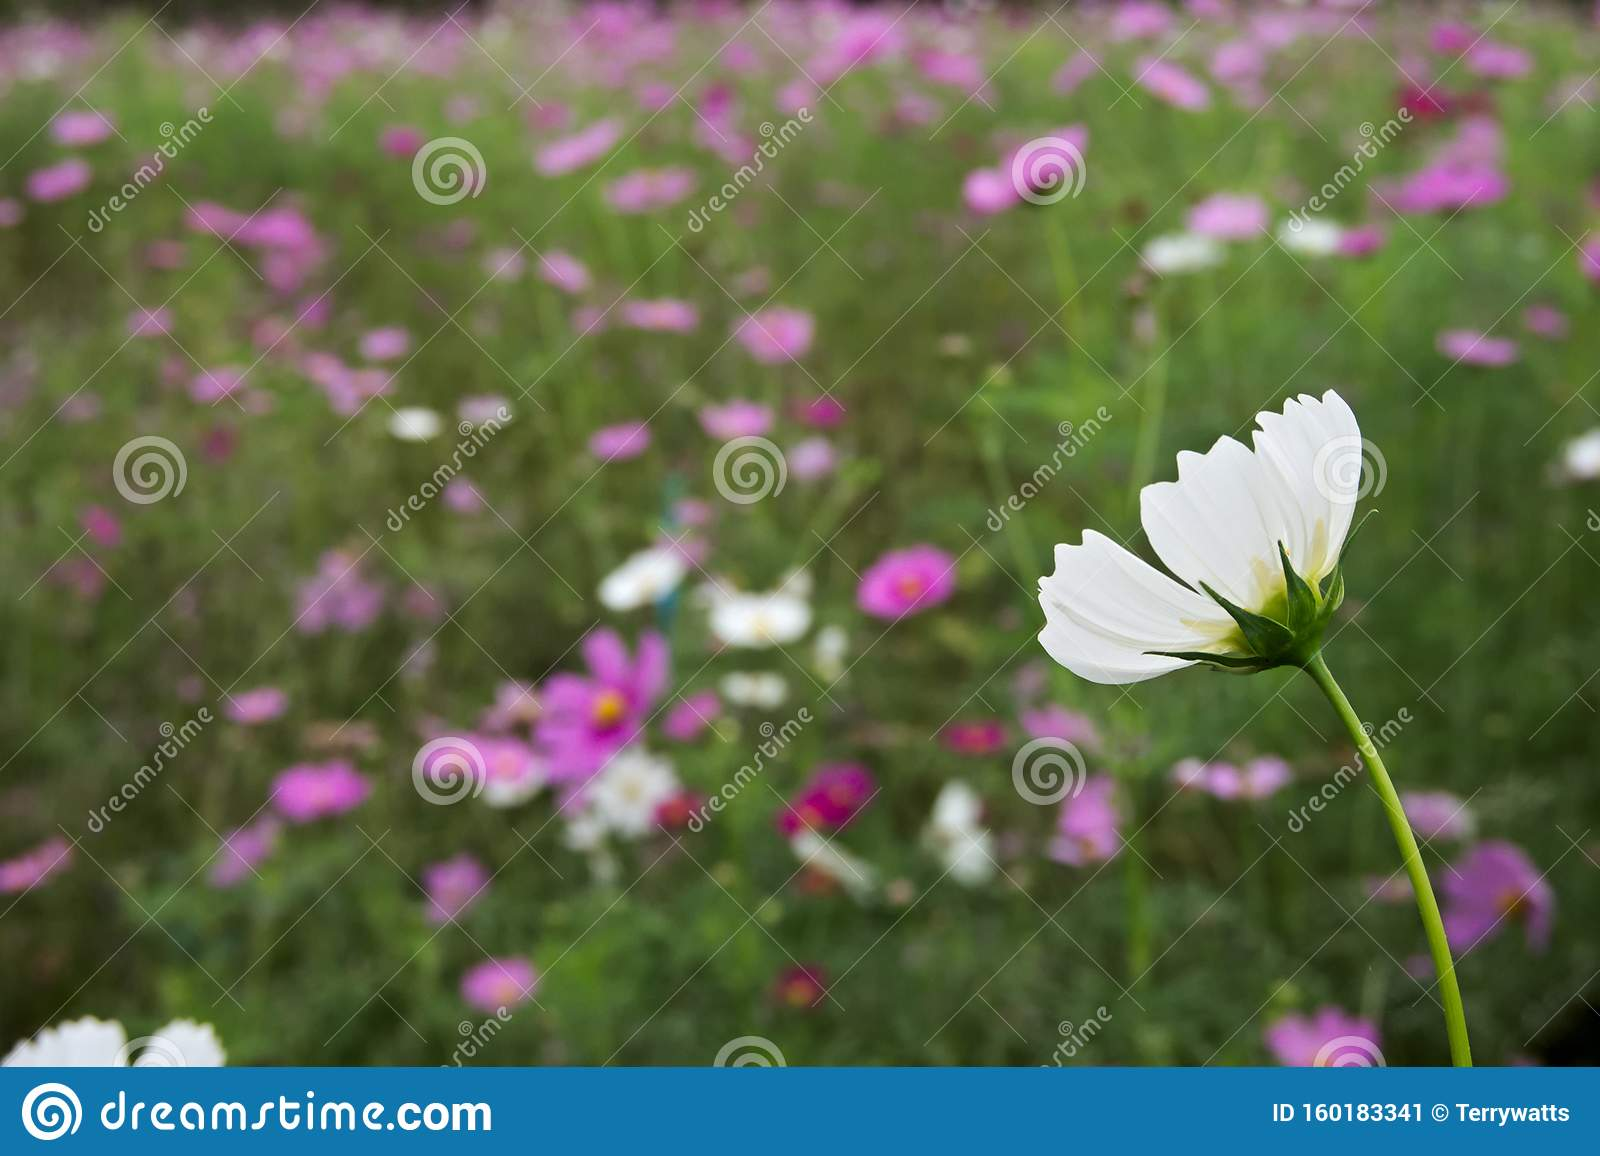 Flower Meadow Cosmos Flowers Coreopsideae Stock Image Image Of Field Coreopsideae 160183341